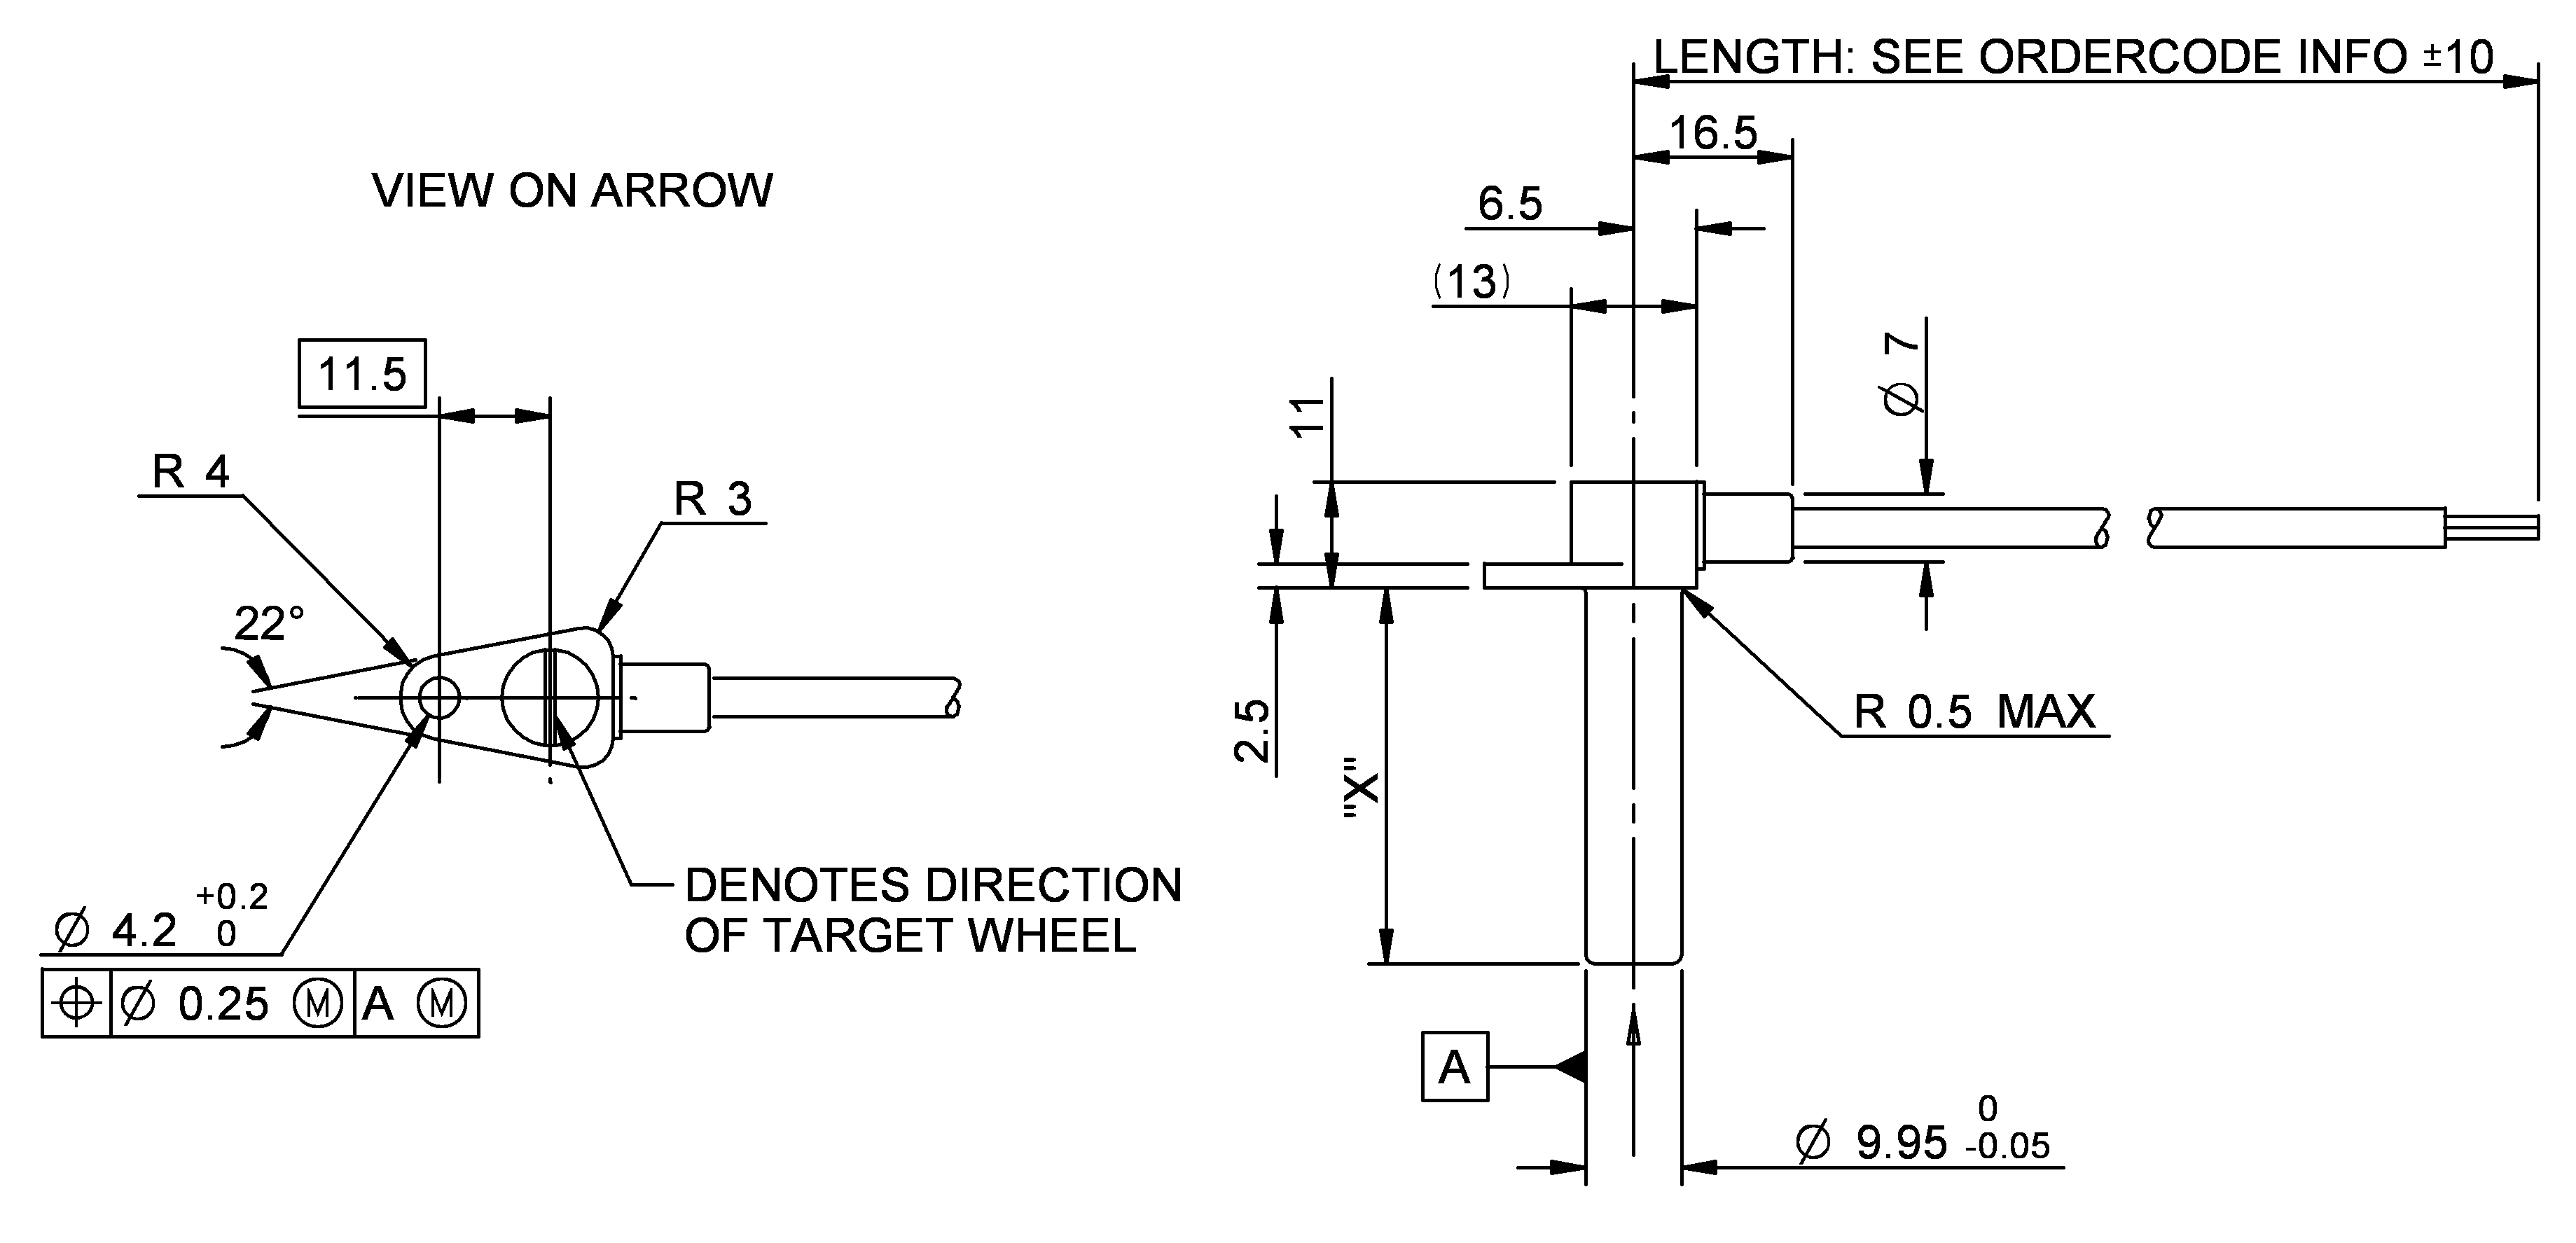 Hall Effect Speed Sensor Schematic Circuit Diameter Dhe Dimension 3678x1775